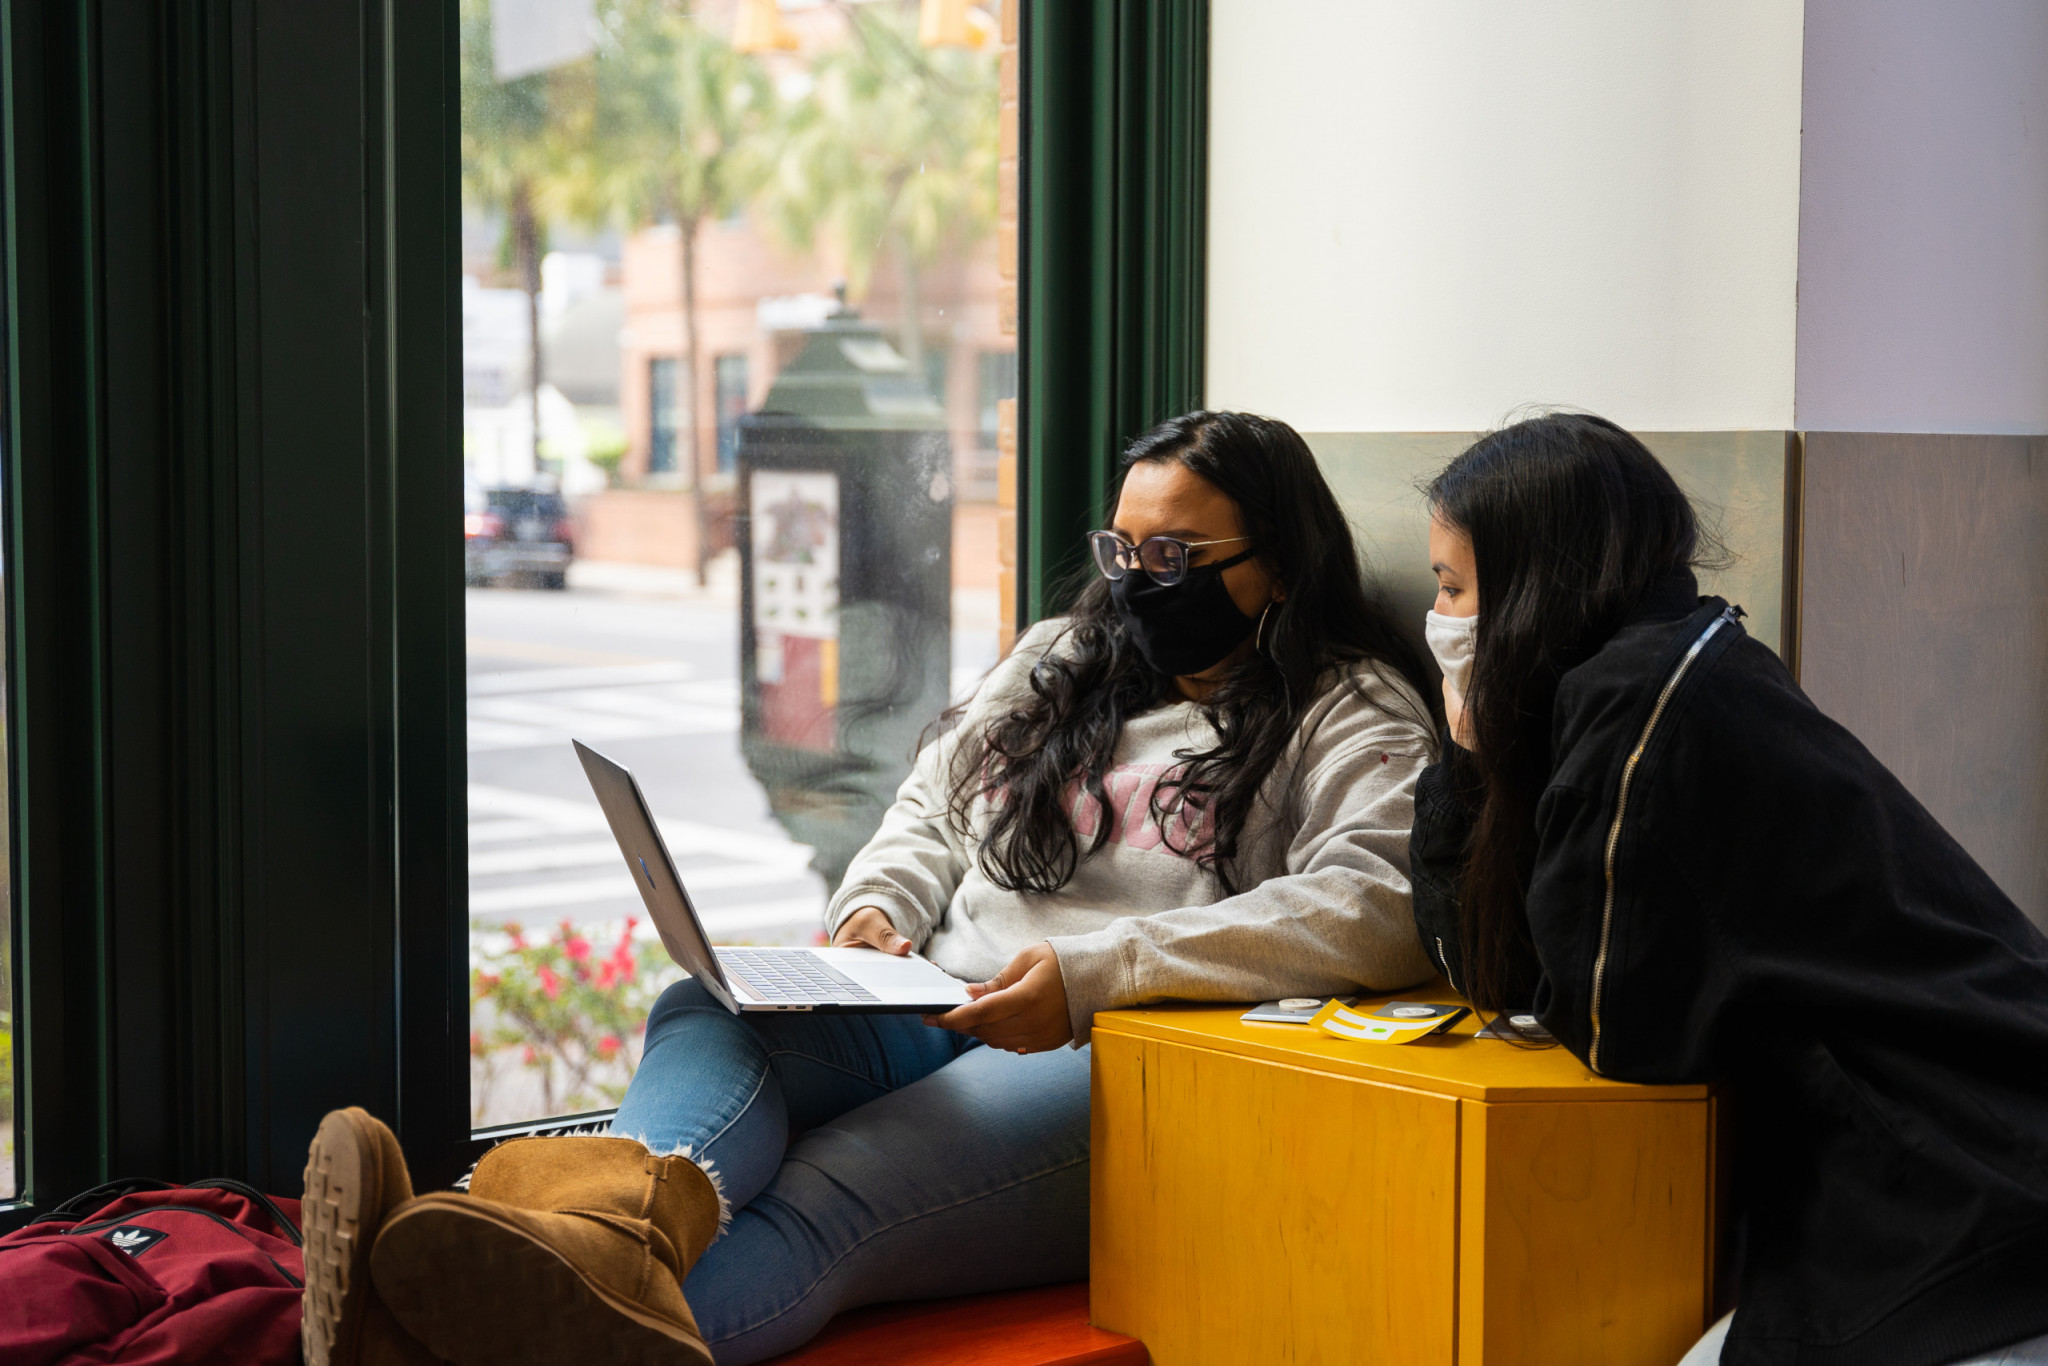 Students attend an online meeting in a small study space, The Halsey Gallery, College of Charleston.